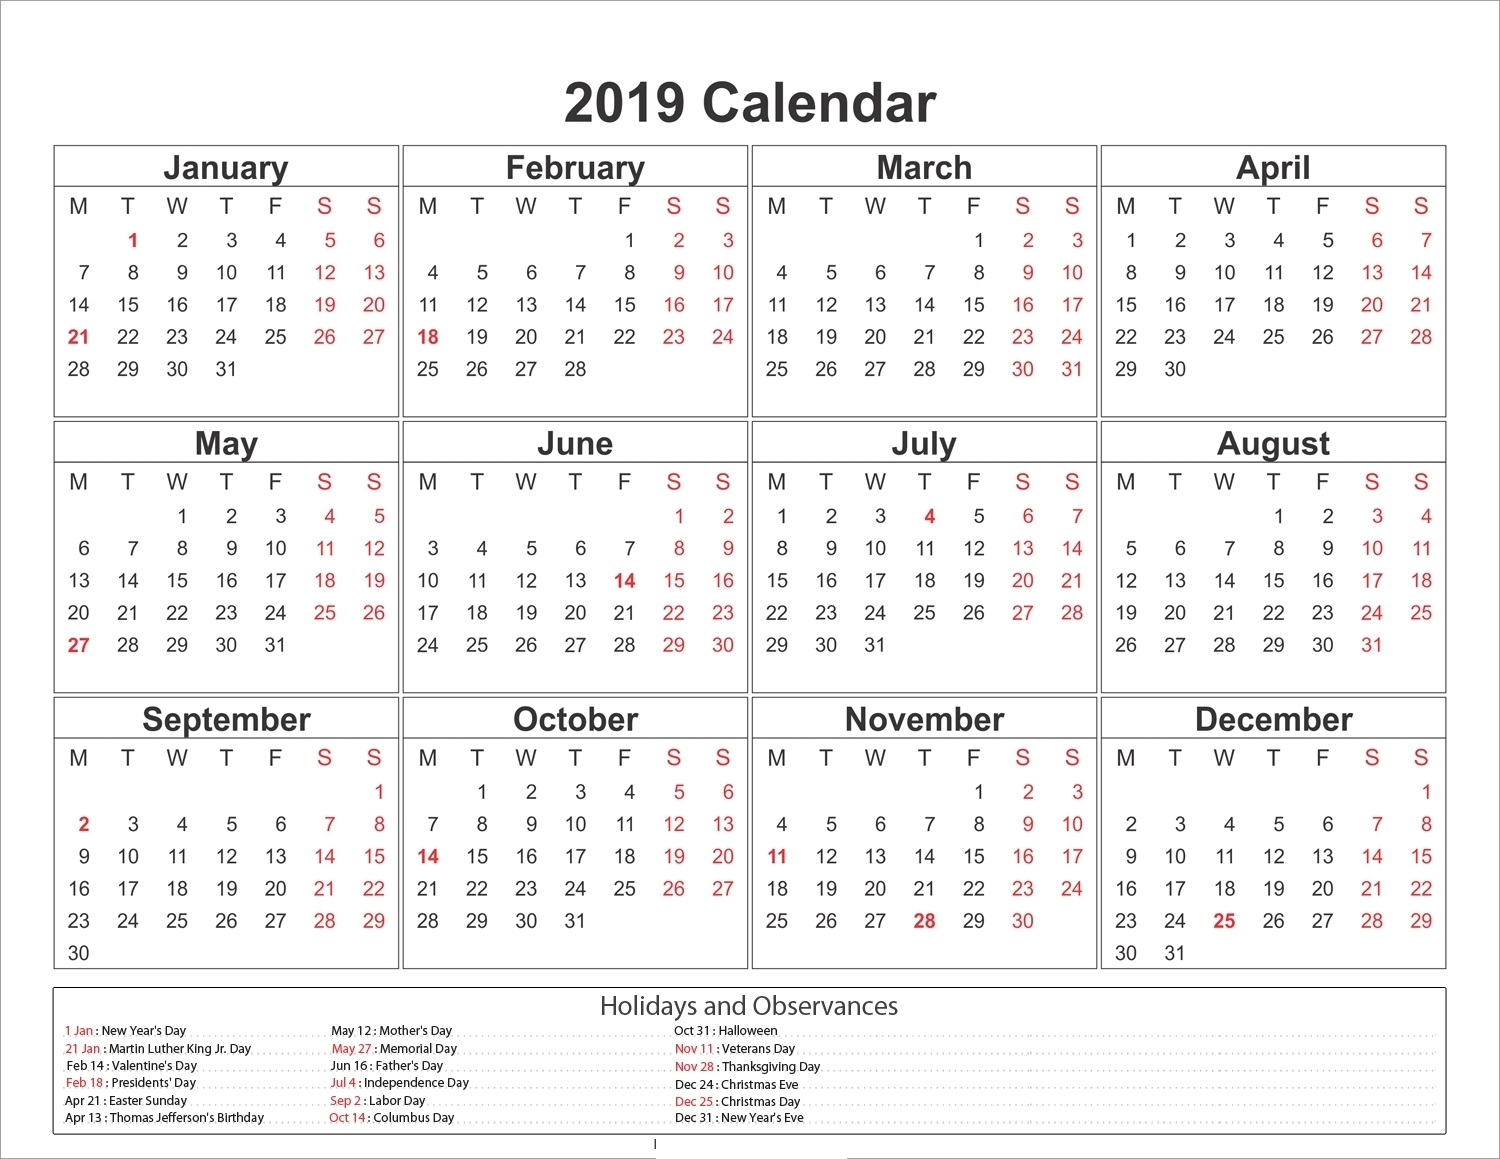 2020 Calendar South Africa With Public Holidays And School